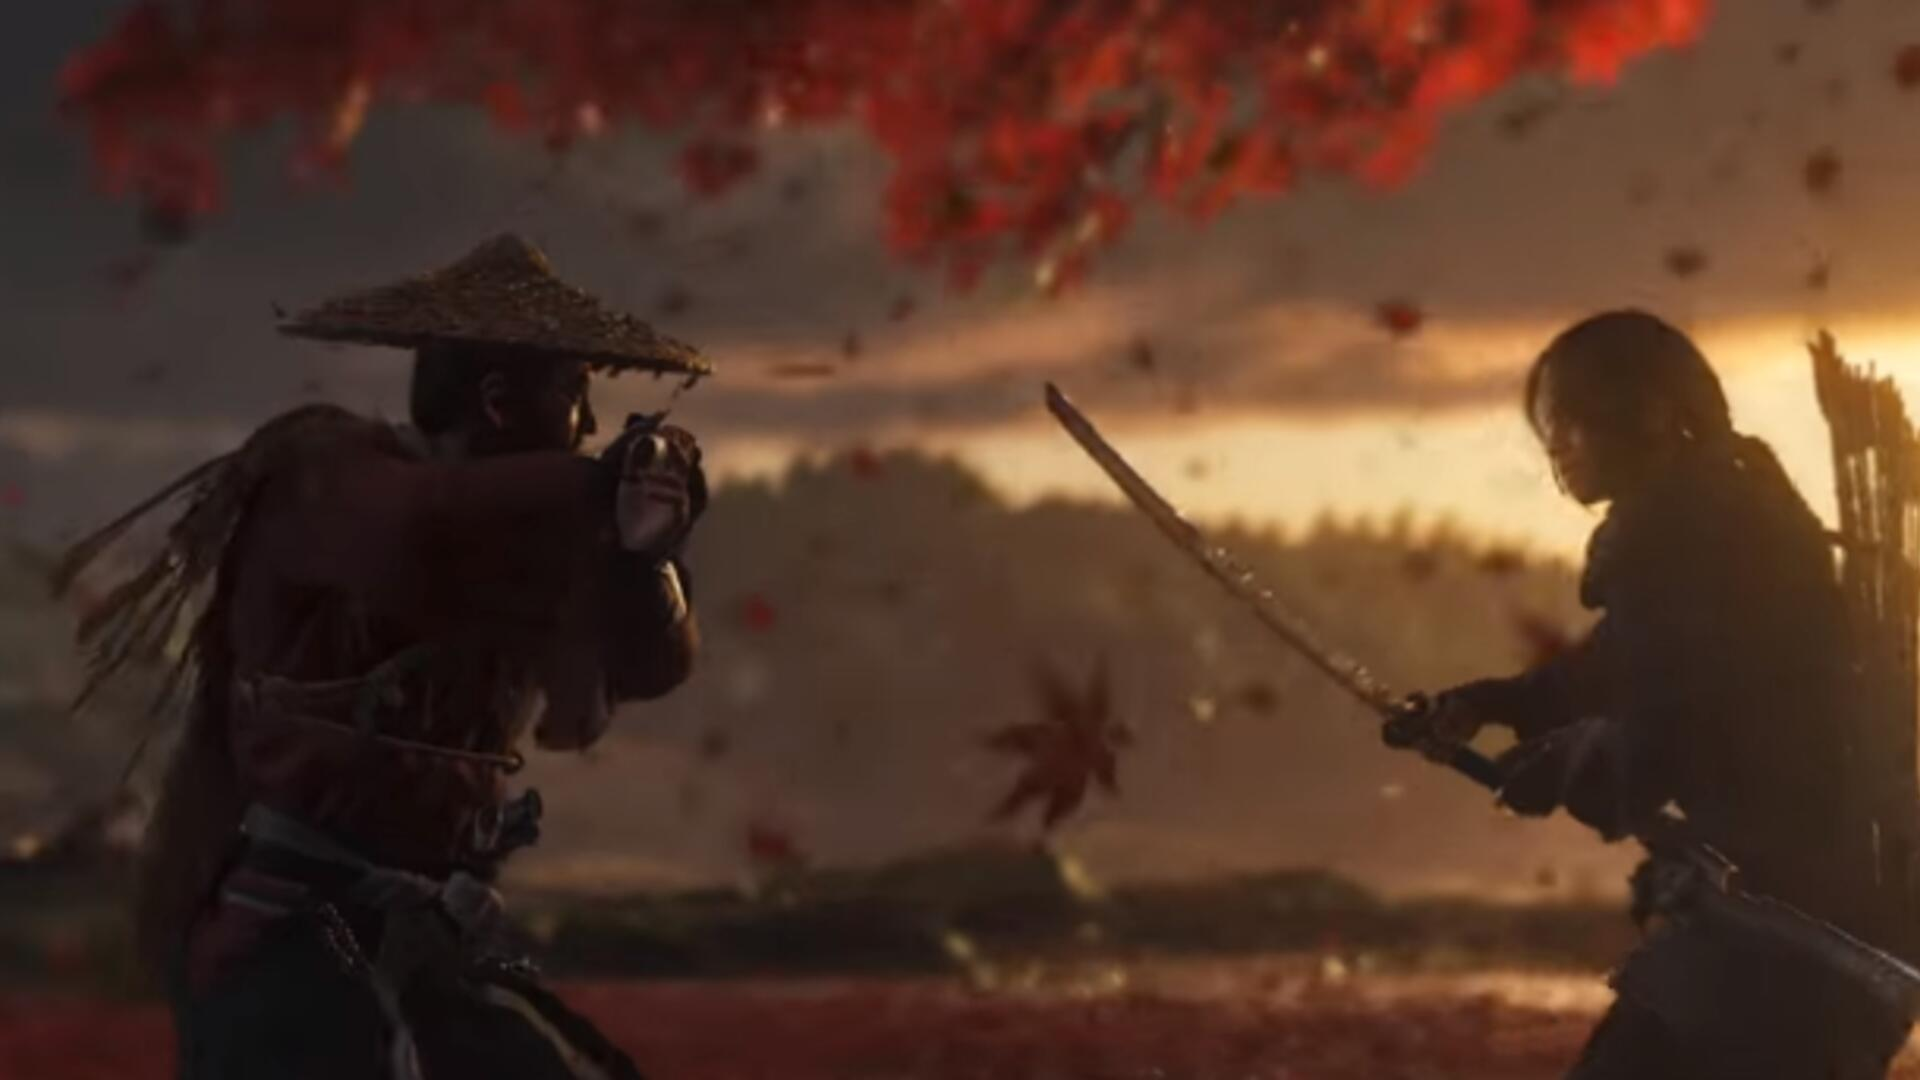 Ghost of Tsushima Release Date, Gameplay, Trailer, Historical Setting - Everything we Know